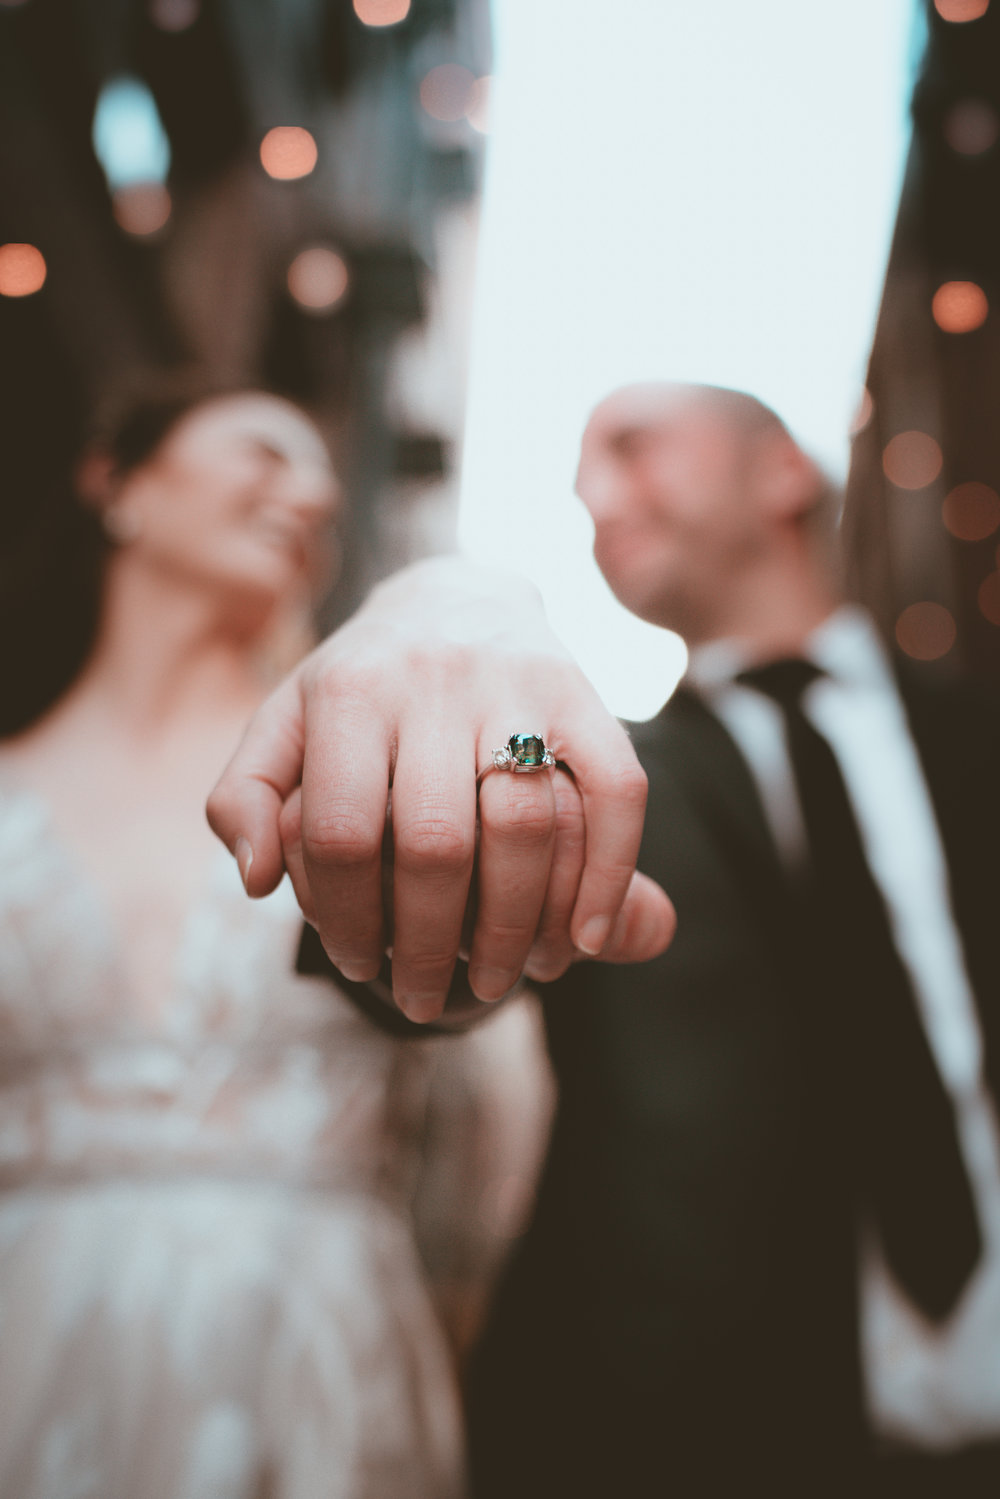 Both - $4950 - We'll be with you all along the way to capture every single special moment